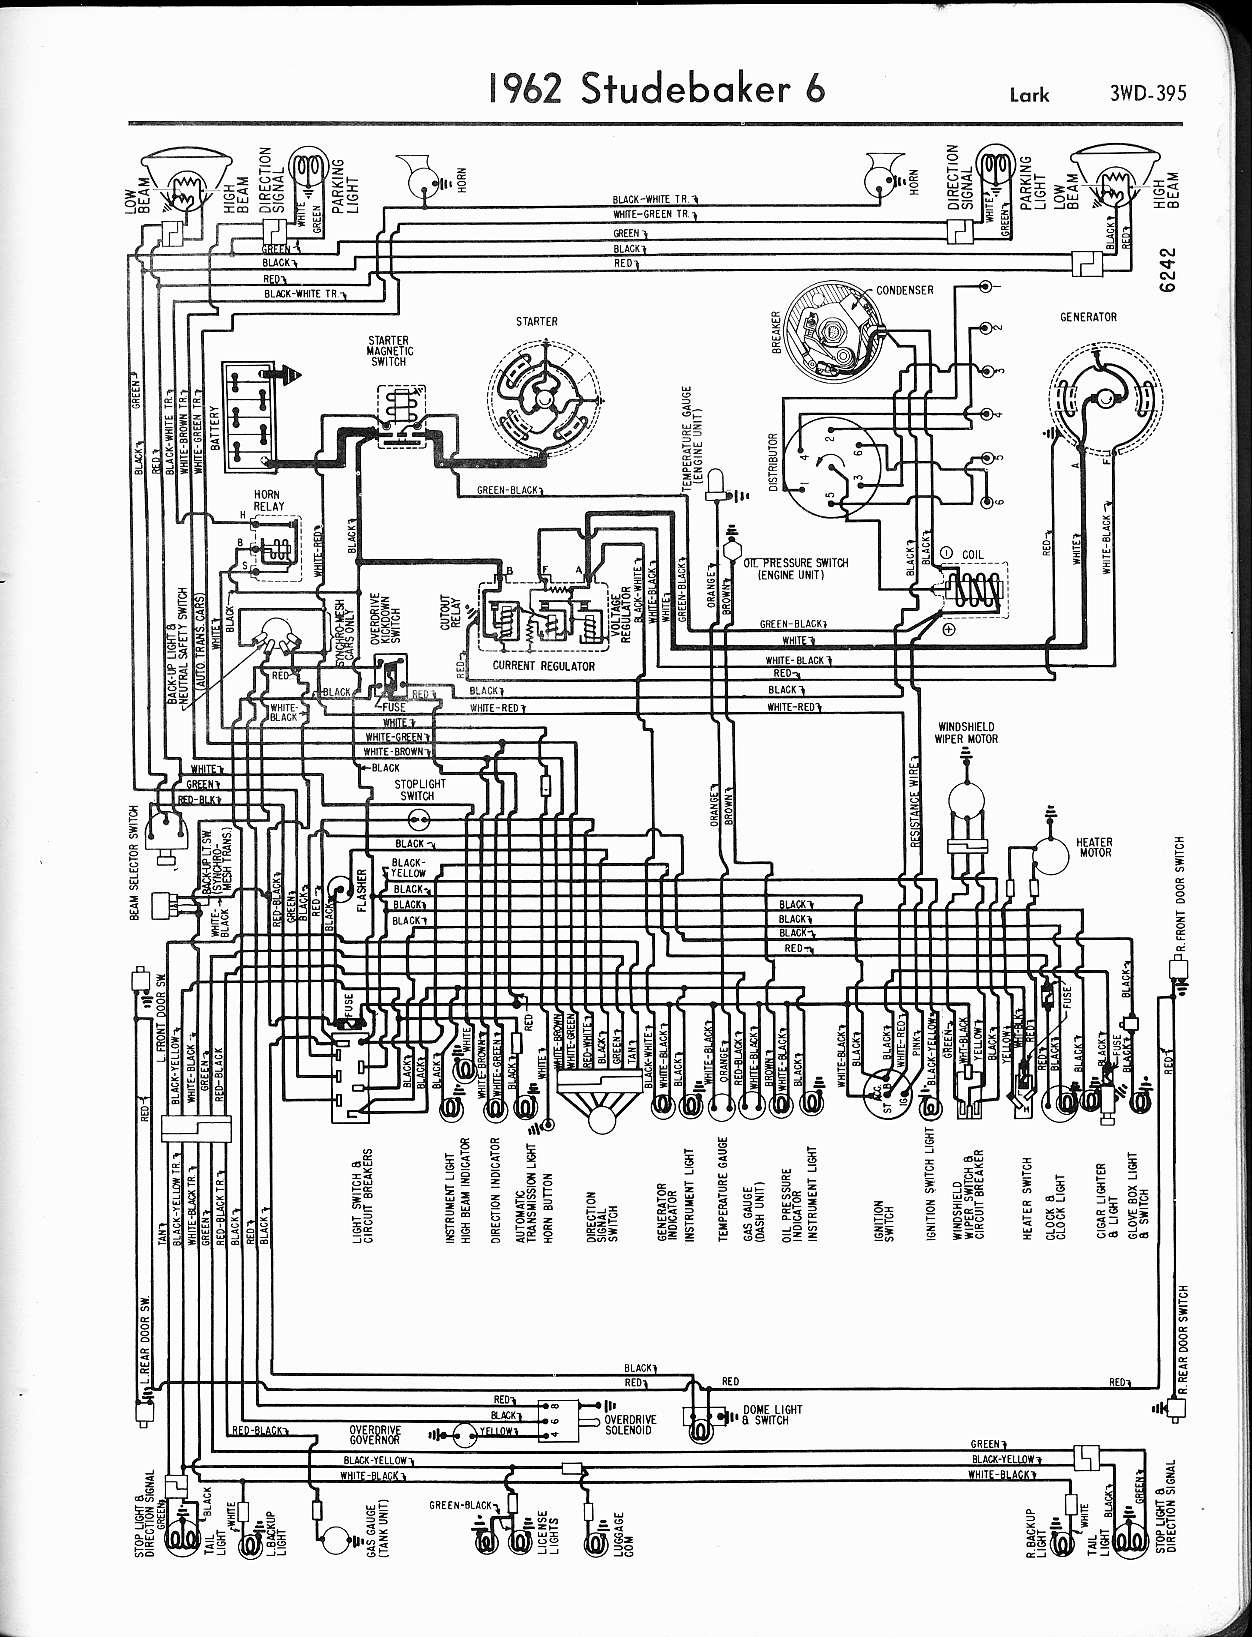 1962 studebaker hawk wiring diagram